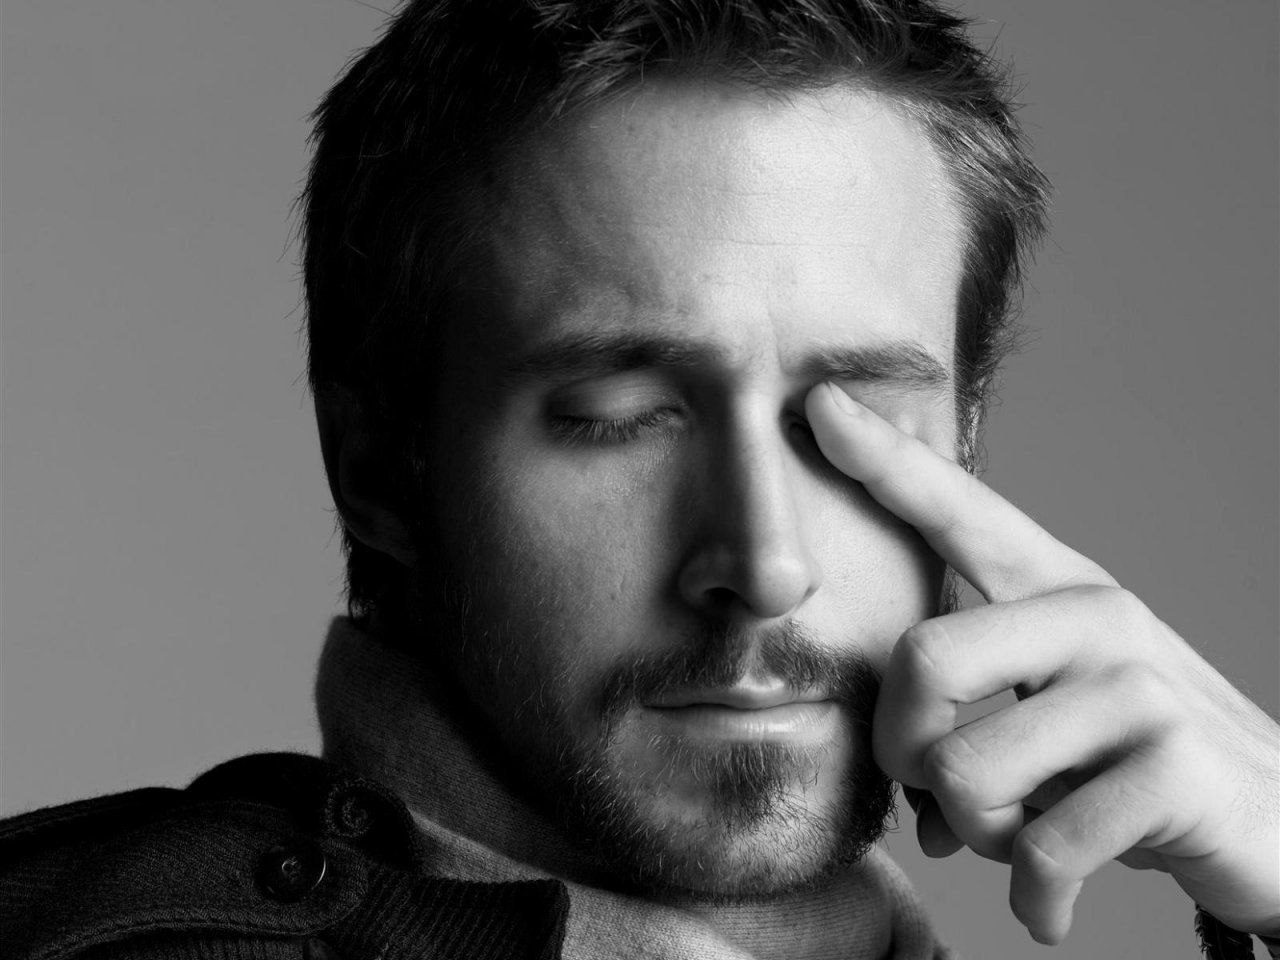 Ryan Gosling - Funny, I was never into blond men until I met my boyfriend. Now they're sexy! LOL